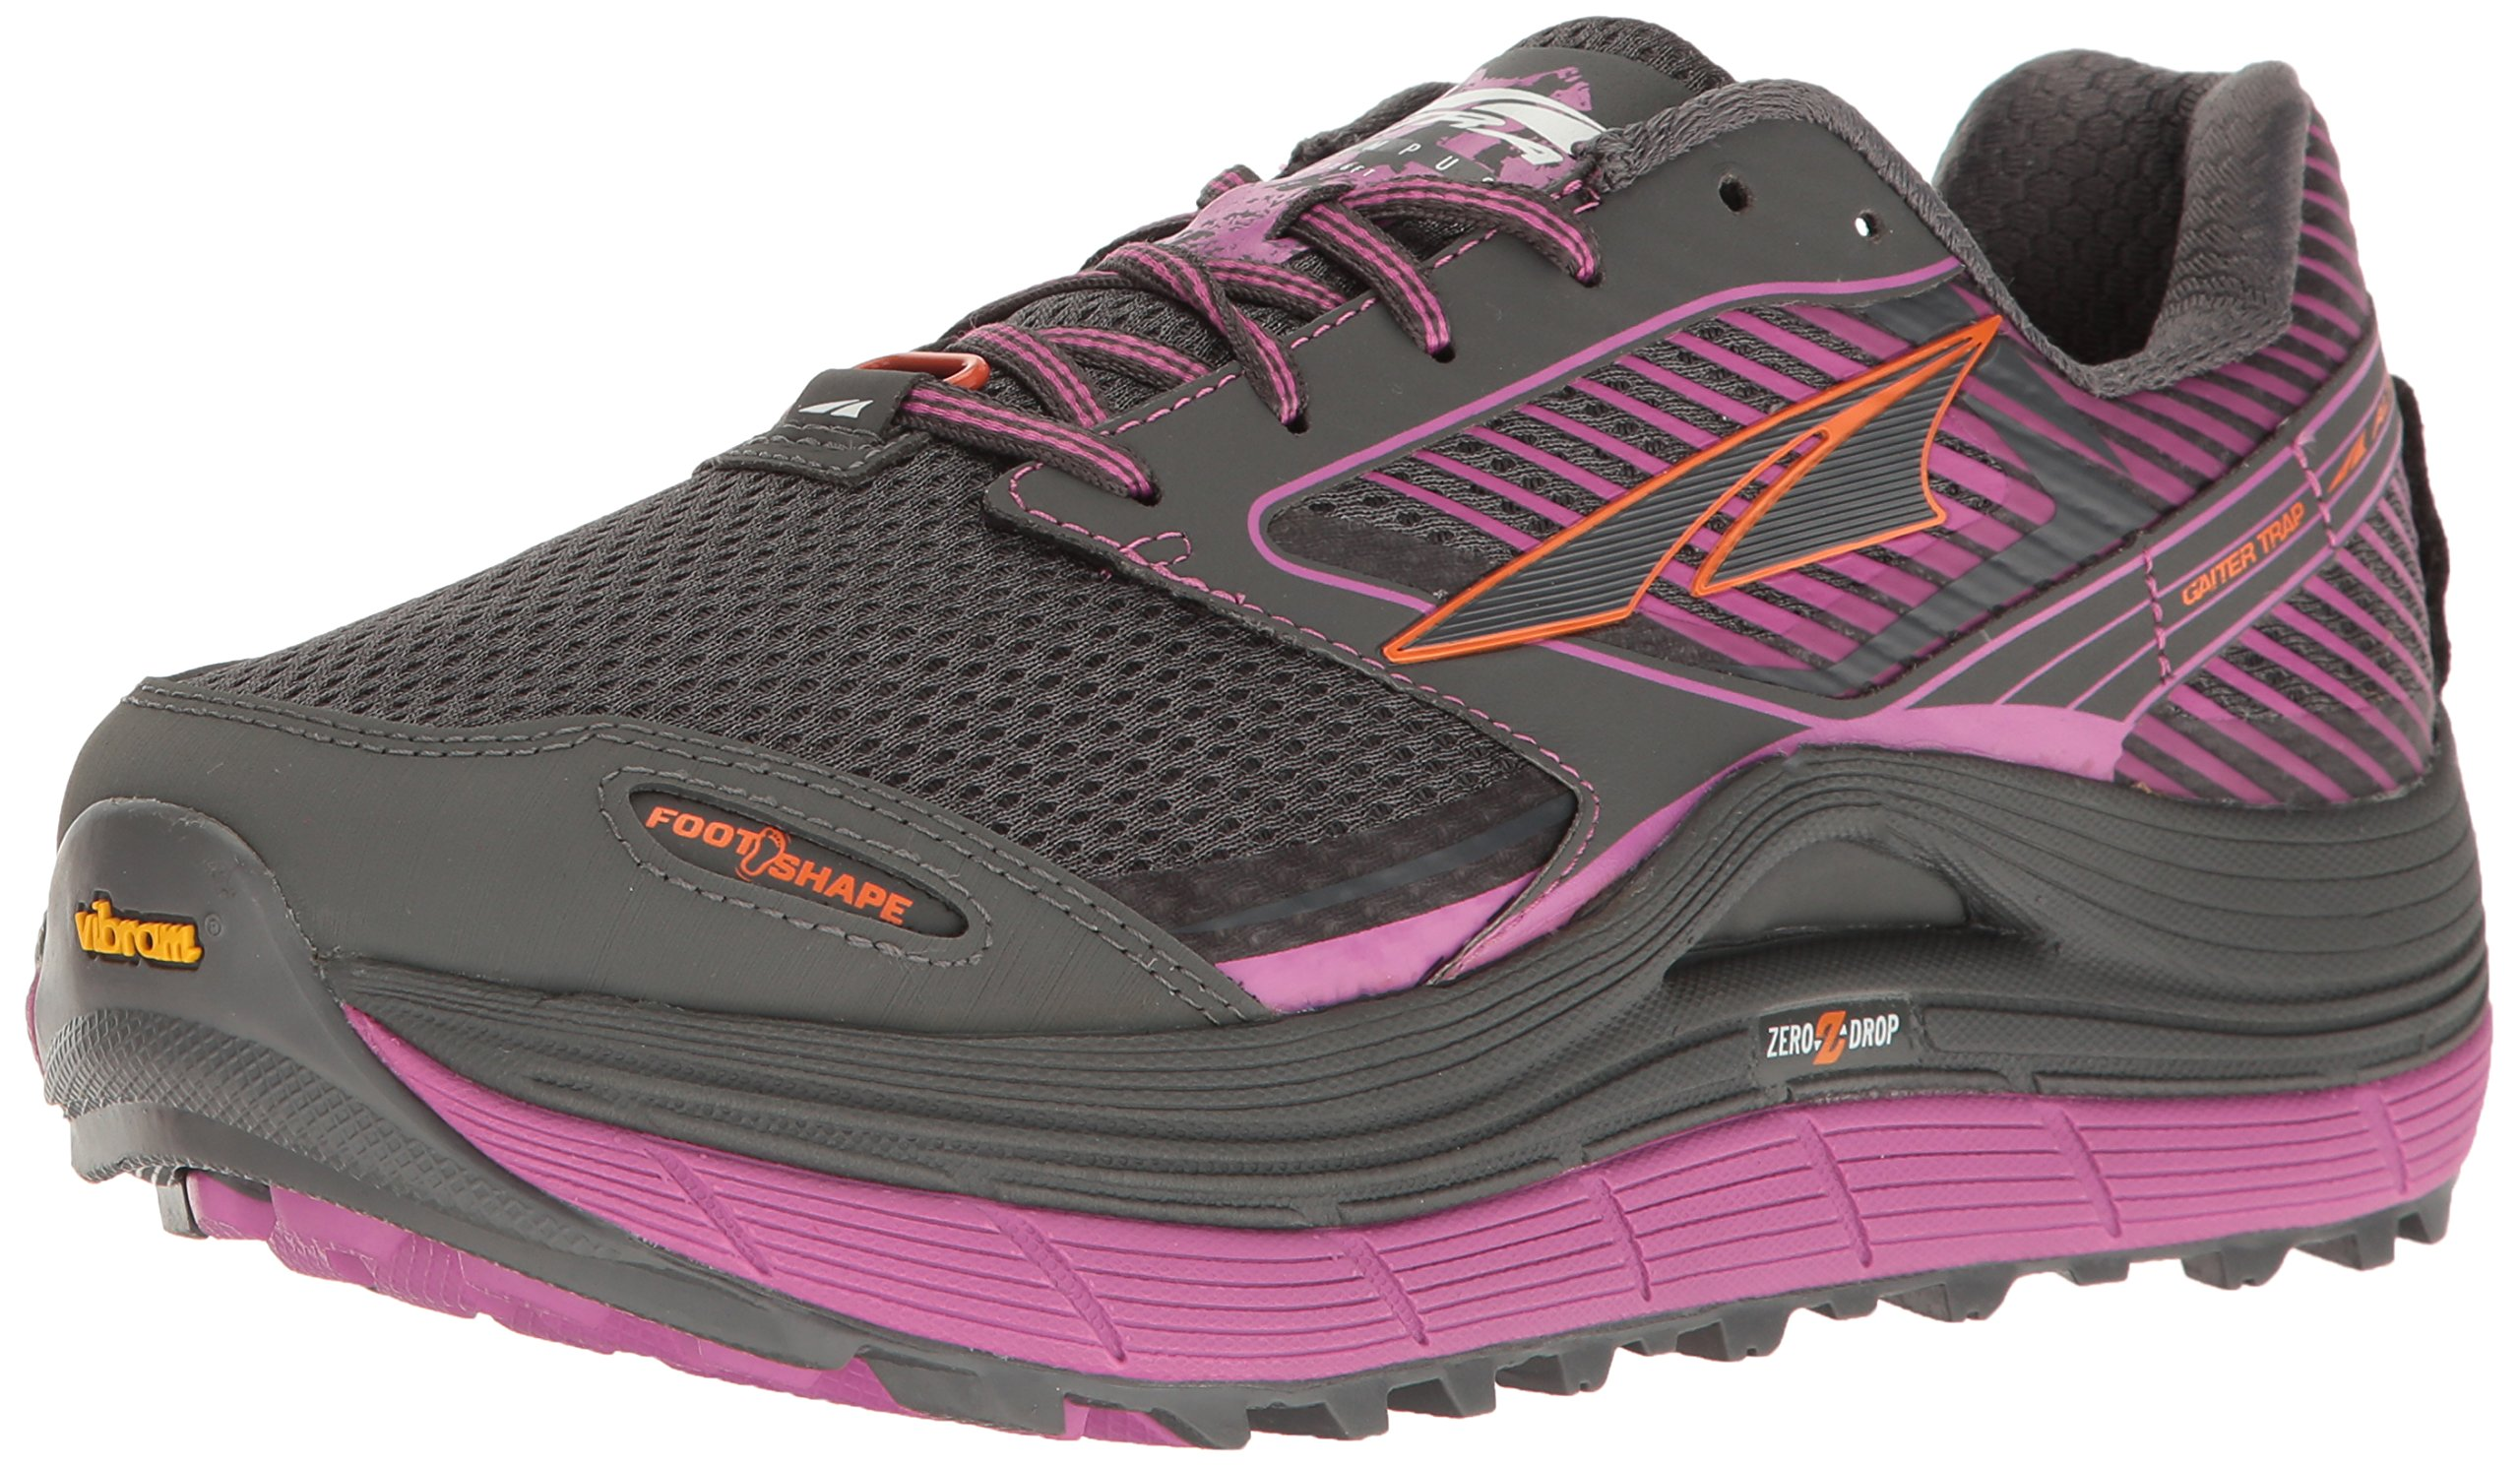 Altra Olympus 2.5 Women's Trail Running Shoe, Purple, 9.5